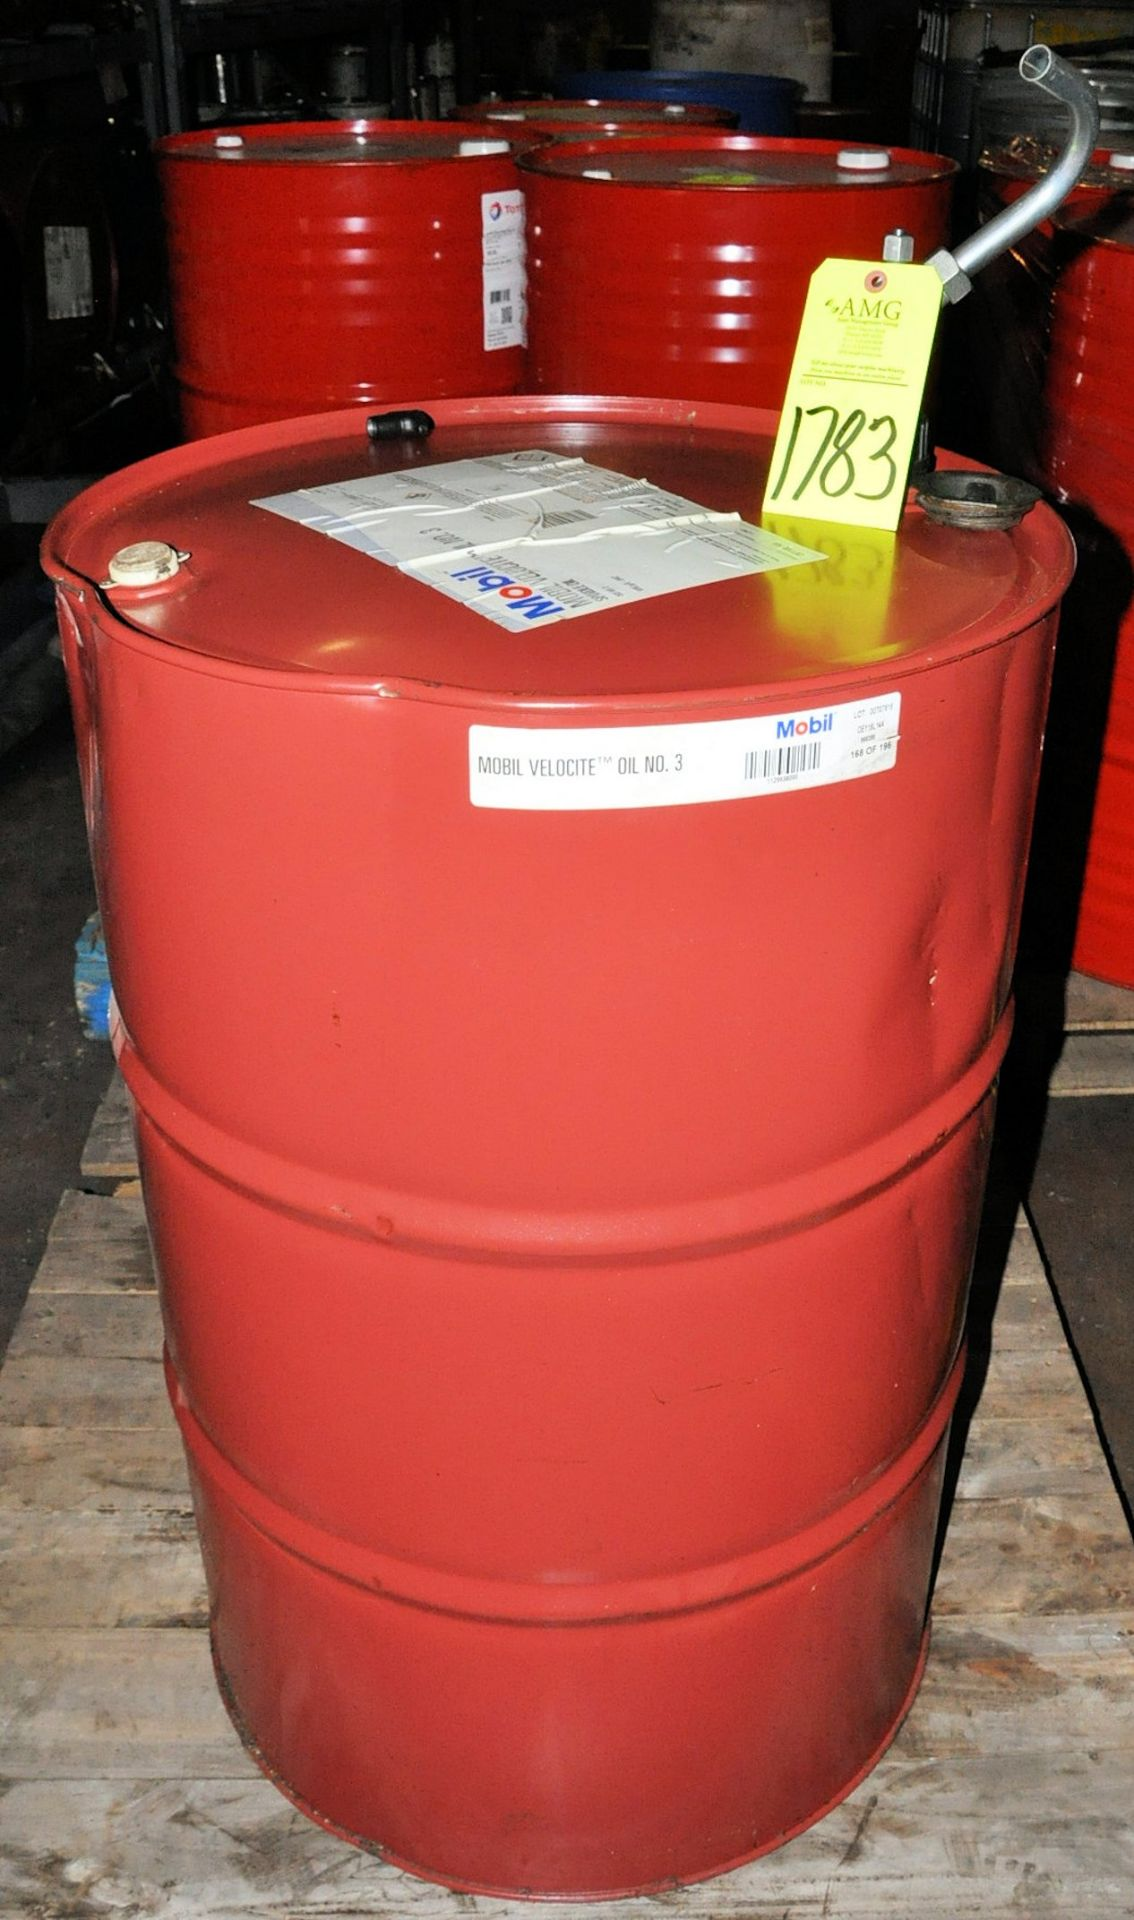 55-Gallon Drum of Mobile Velocite No. 3 Sopindle Oil on (1) Pallet, (Oils Storage Building), (Yellow